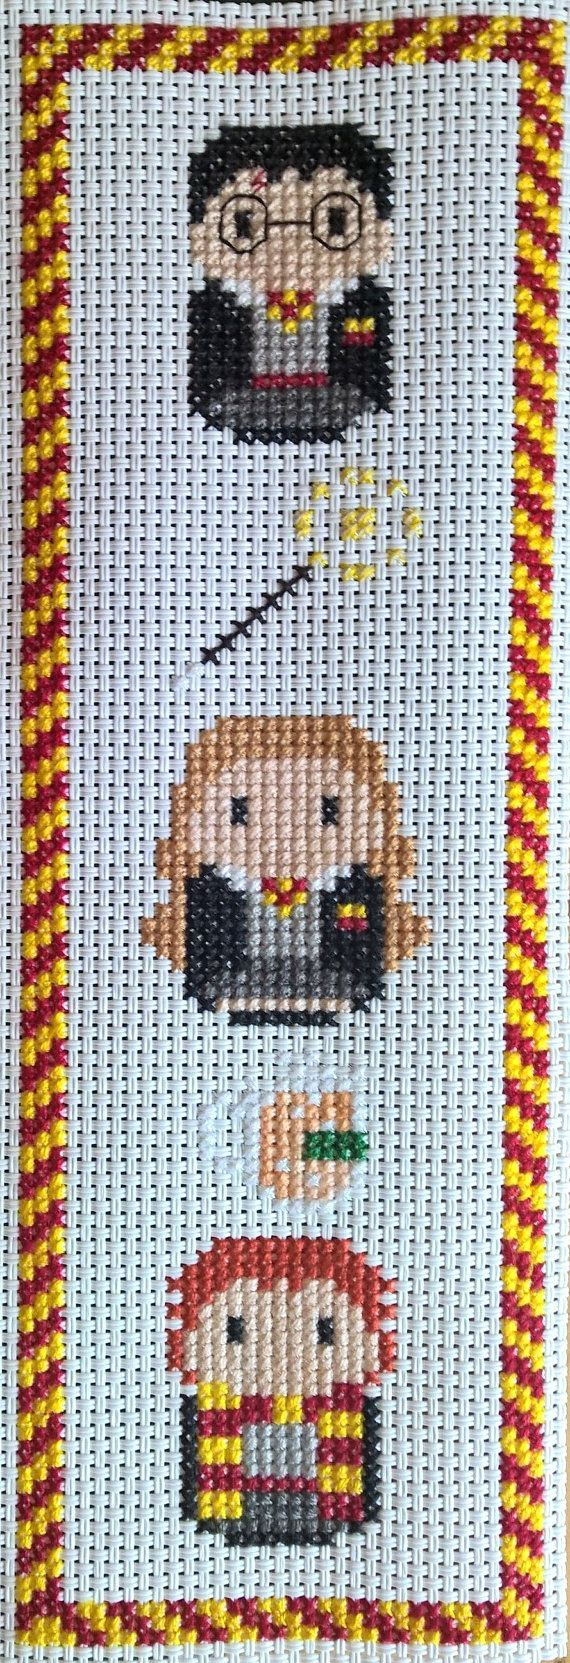 Featuring Harry, Hermione and Ron along with a wand and a mug of butter beer. Gryffindor house color border  Design by Clouds Factory  Cross stitched on durable vinyl weave so no fraying or staining  MADE TO ORDER  Design can be made ready to fit a 5x7 frame on Aida cloth with or without border